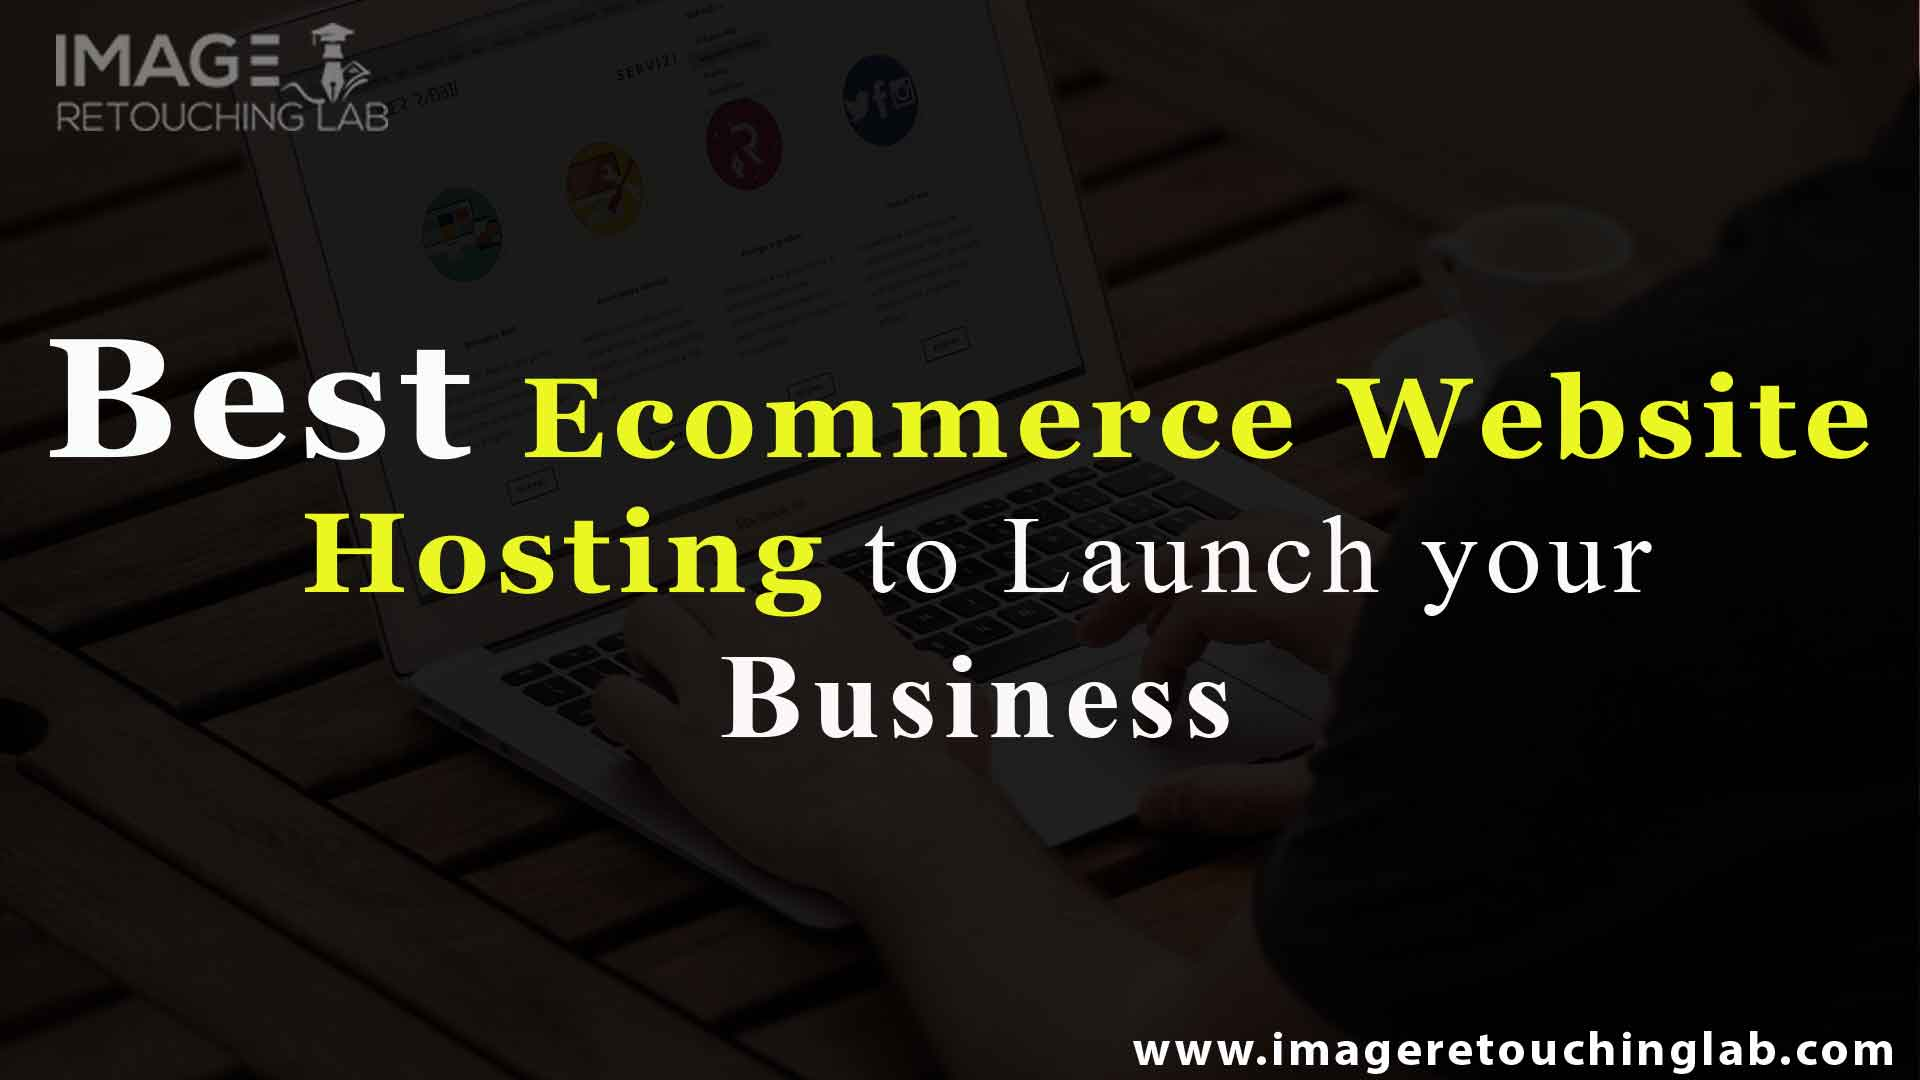 Best Ecommerce Website Hosting to Launch Your Business